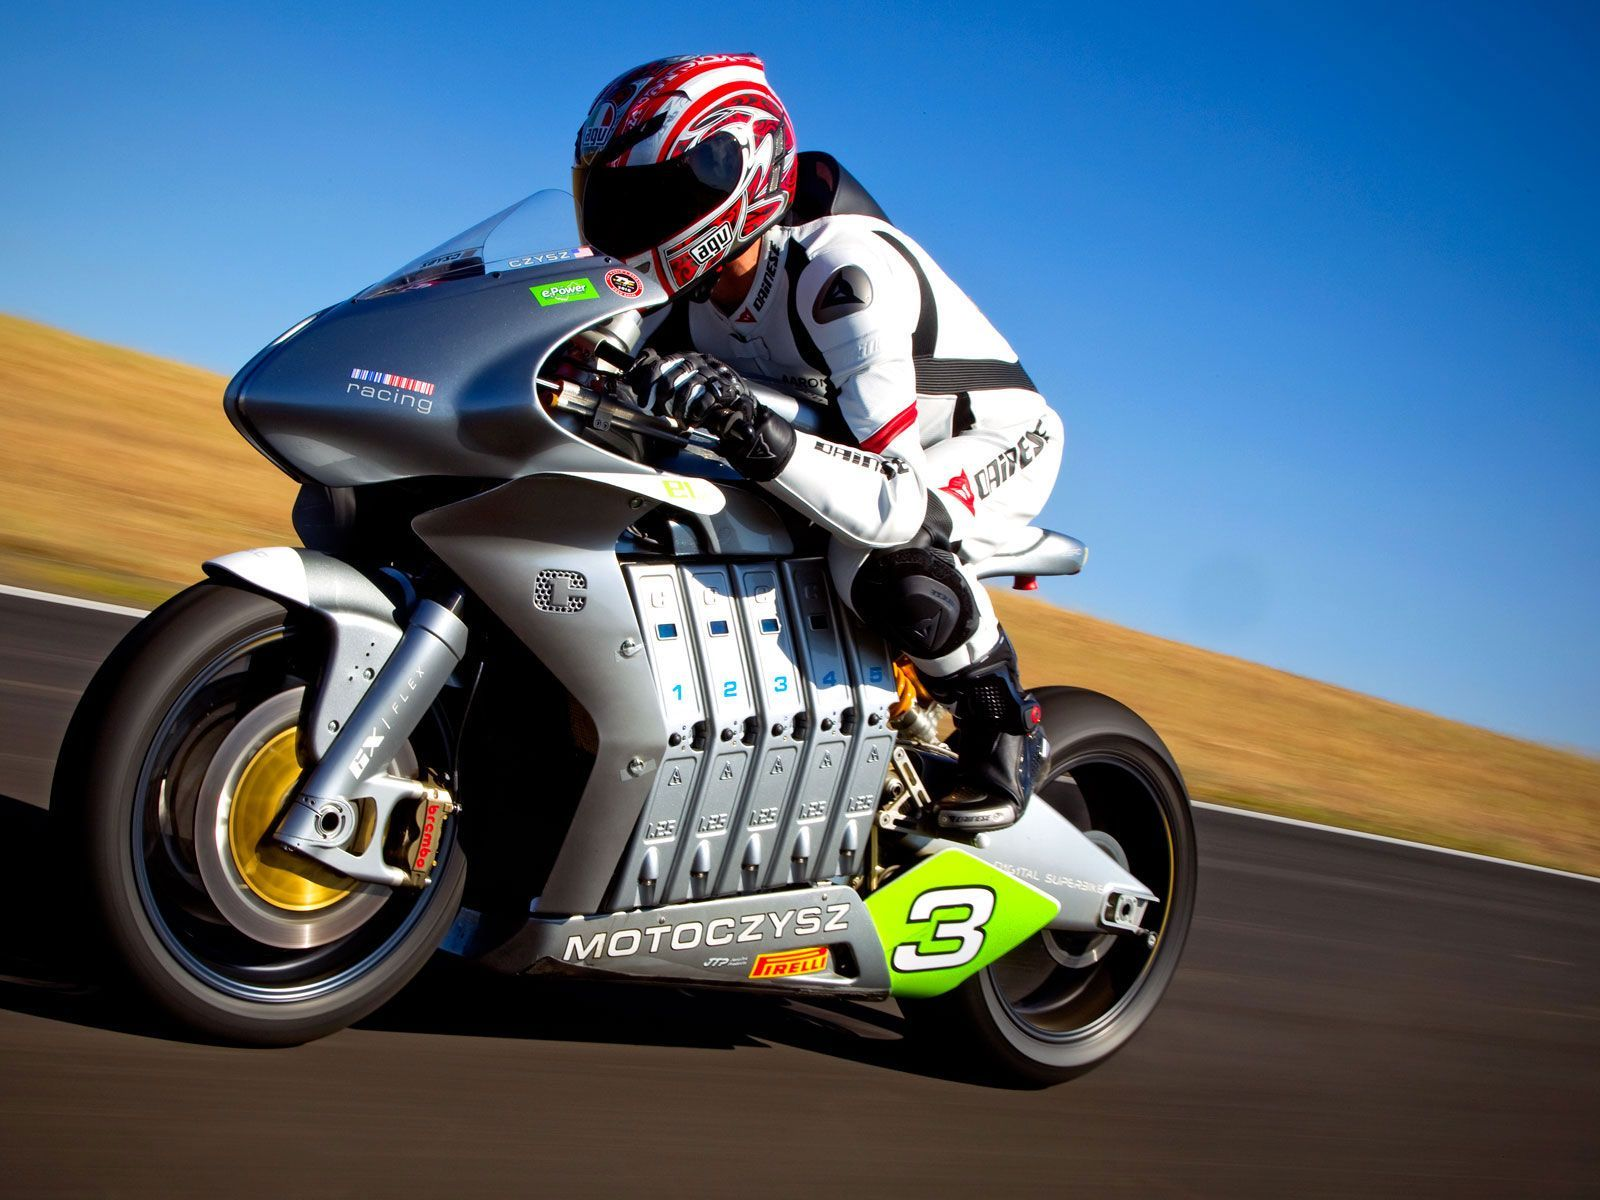 High Speed Motor Bike Hd Wallpaper With Images Racing Bikes